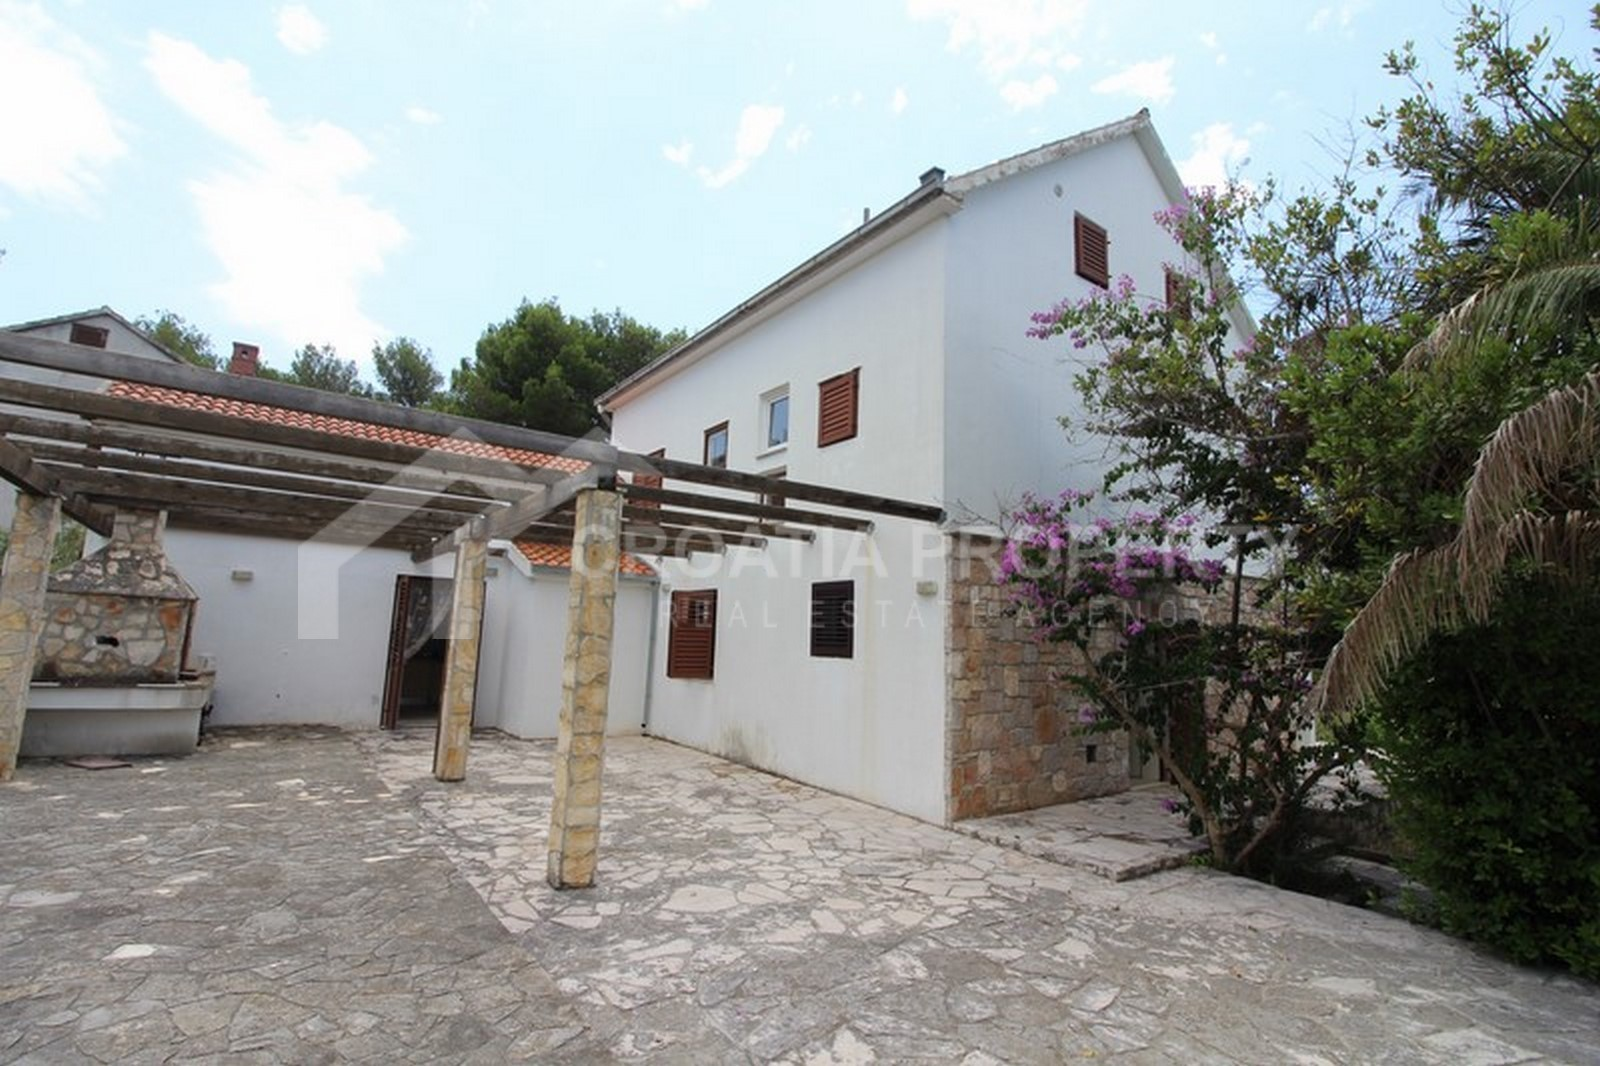 Charming detached house for sale on Brac